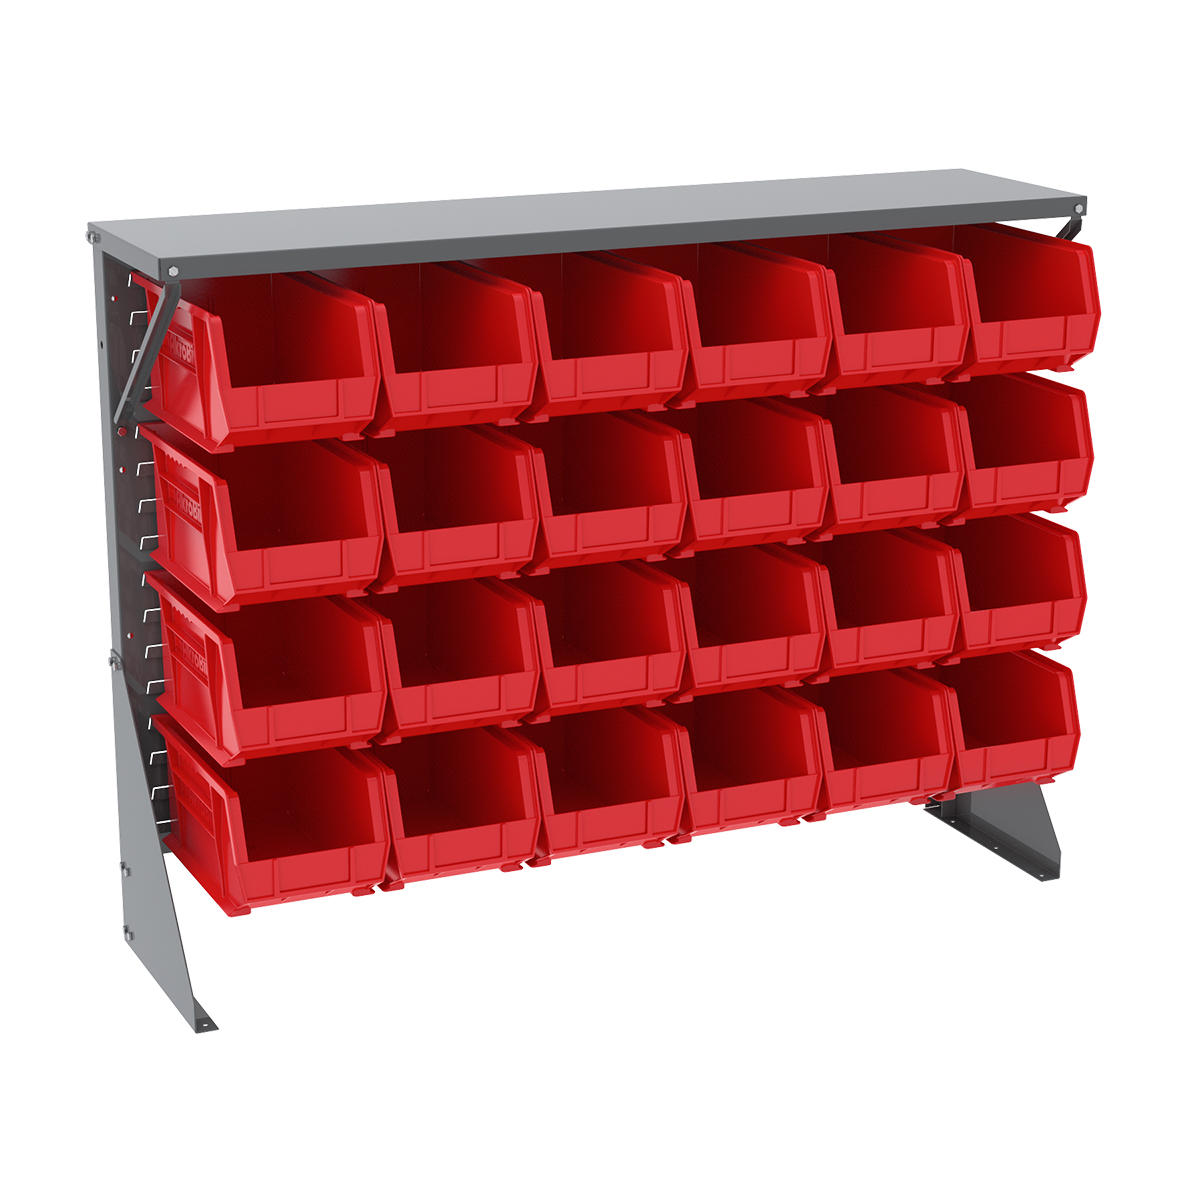 Item DISCONTINUED by Manufacturer.  Low Profile Floor Rack, 1-Sided, Shelf w/ 24 AkroBins, Gray/Red (30650GY240R).  This item sold in carton quantities of 1.